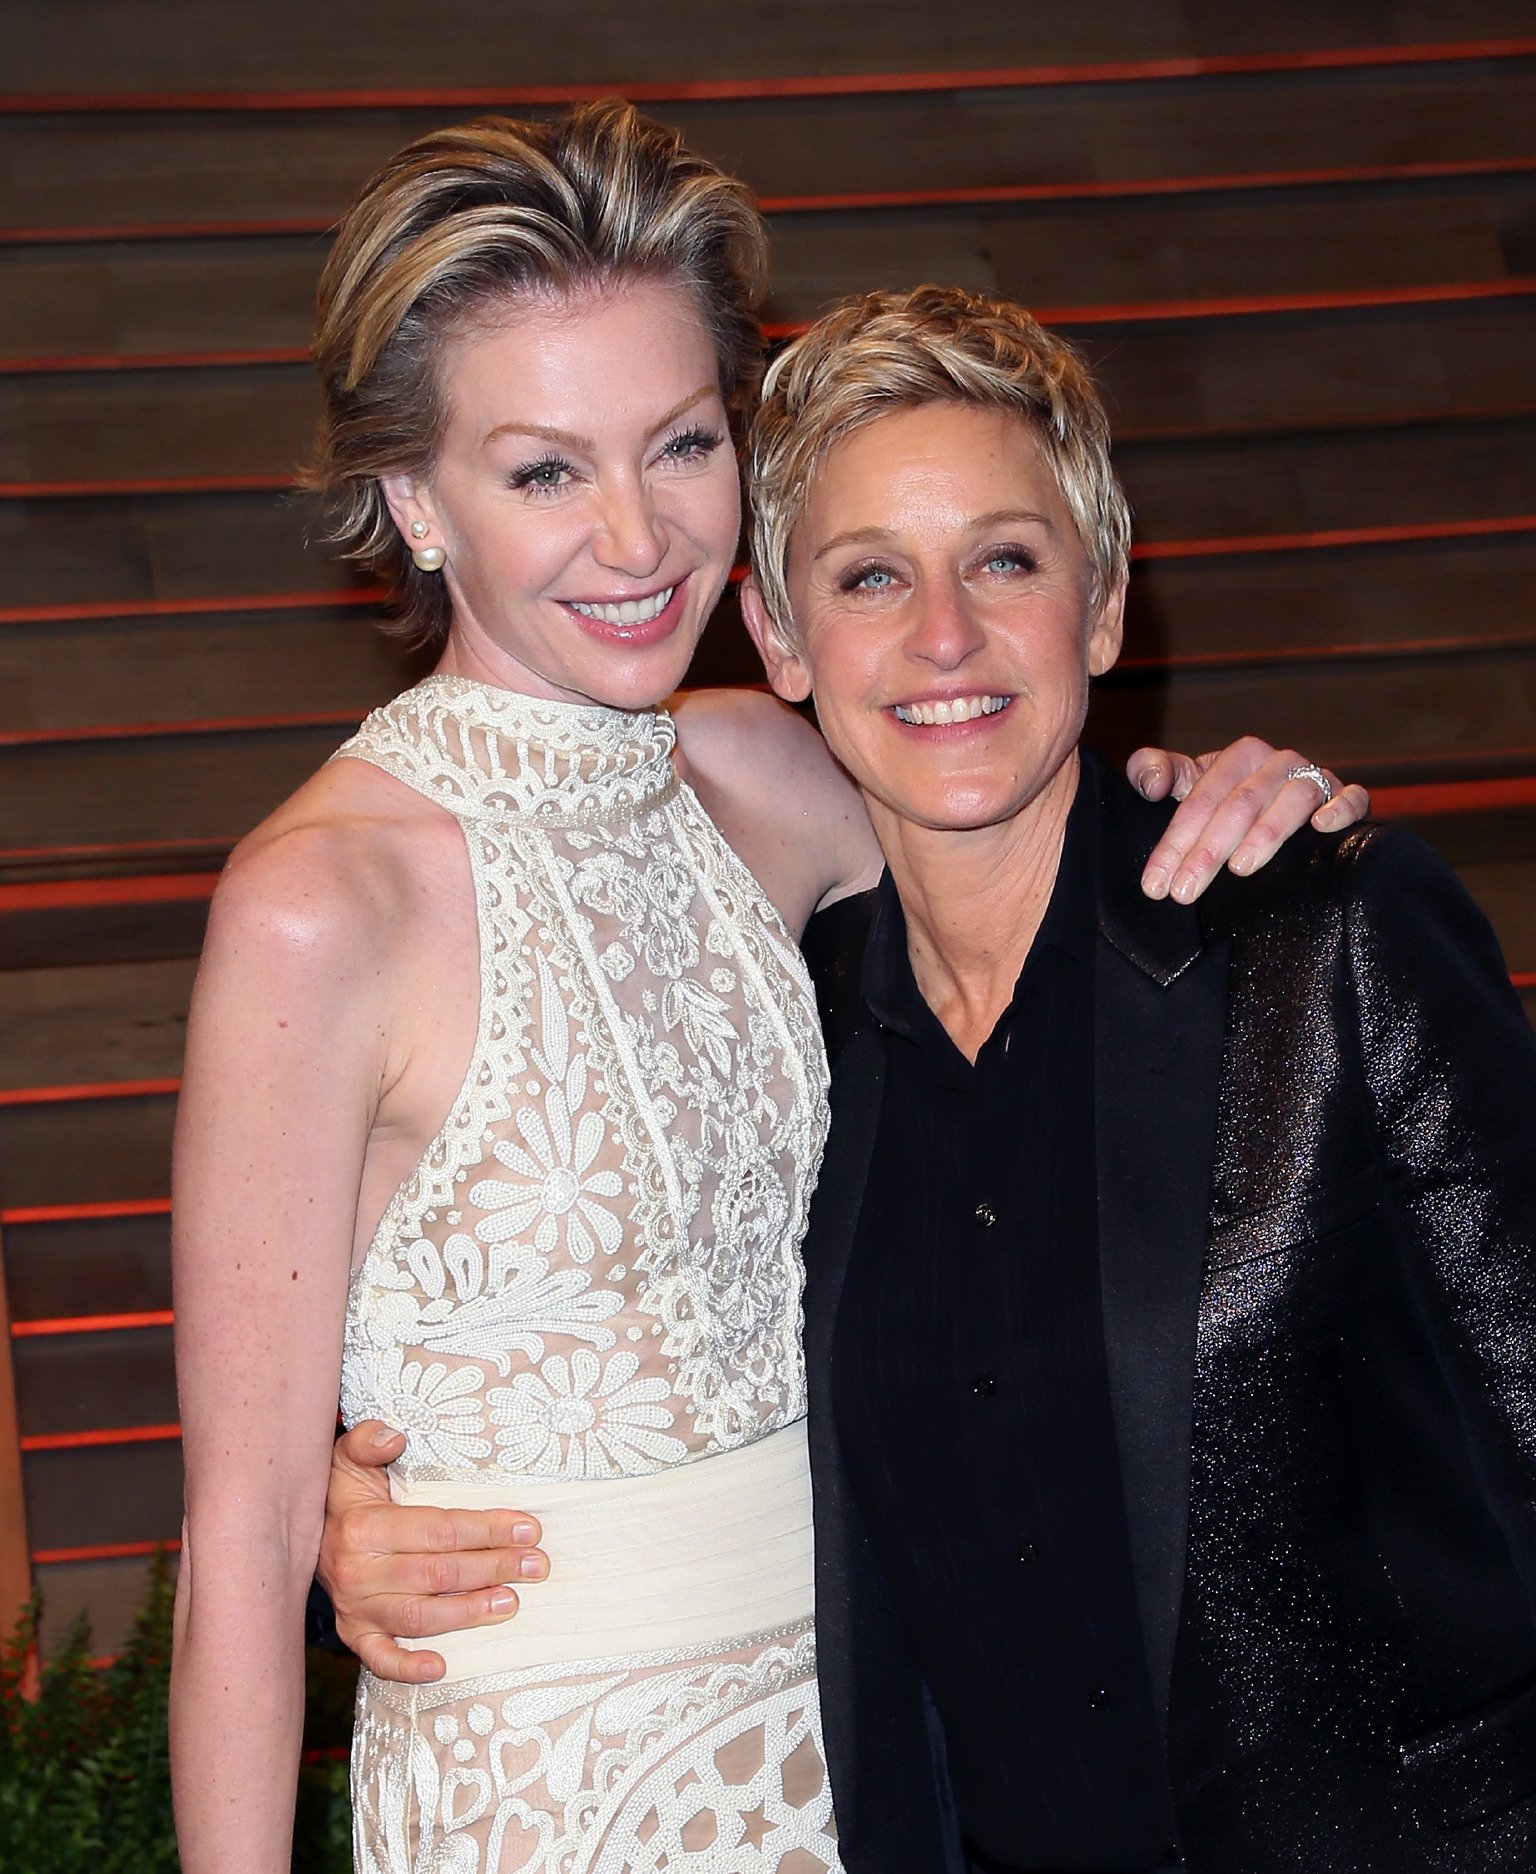 Ellen DeGeneres (R) and spouse actress Portia de Rossi attend the 2014 Vanity Fair Oscar Party  | Getty Images / Global Images Ukraine